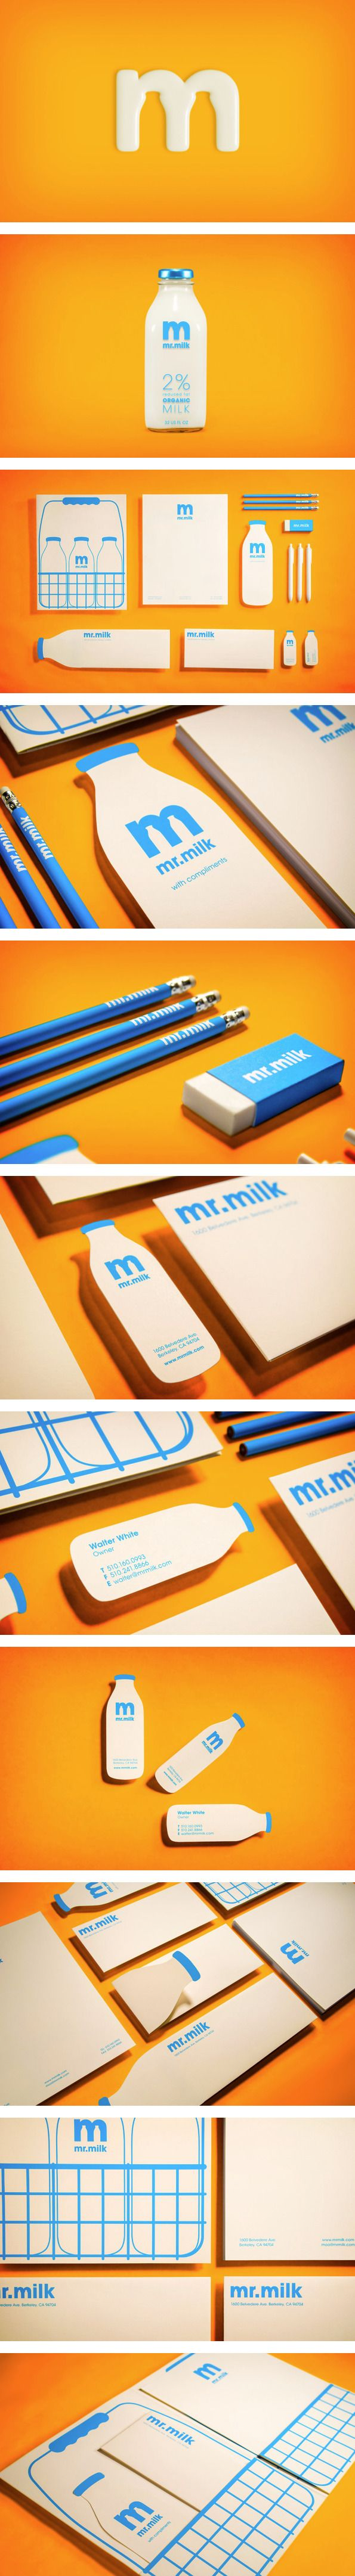 Mr. Milk by Justin Ross Tolentino.Really impressed and amazing packaging, one of my favorites. Very creative.